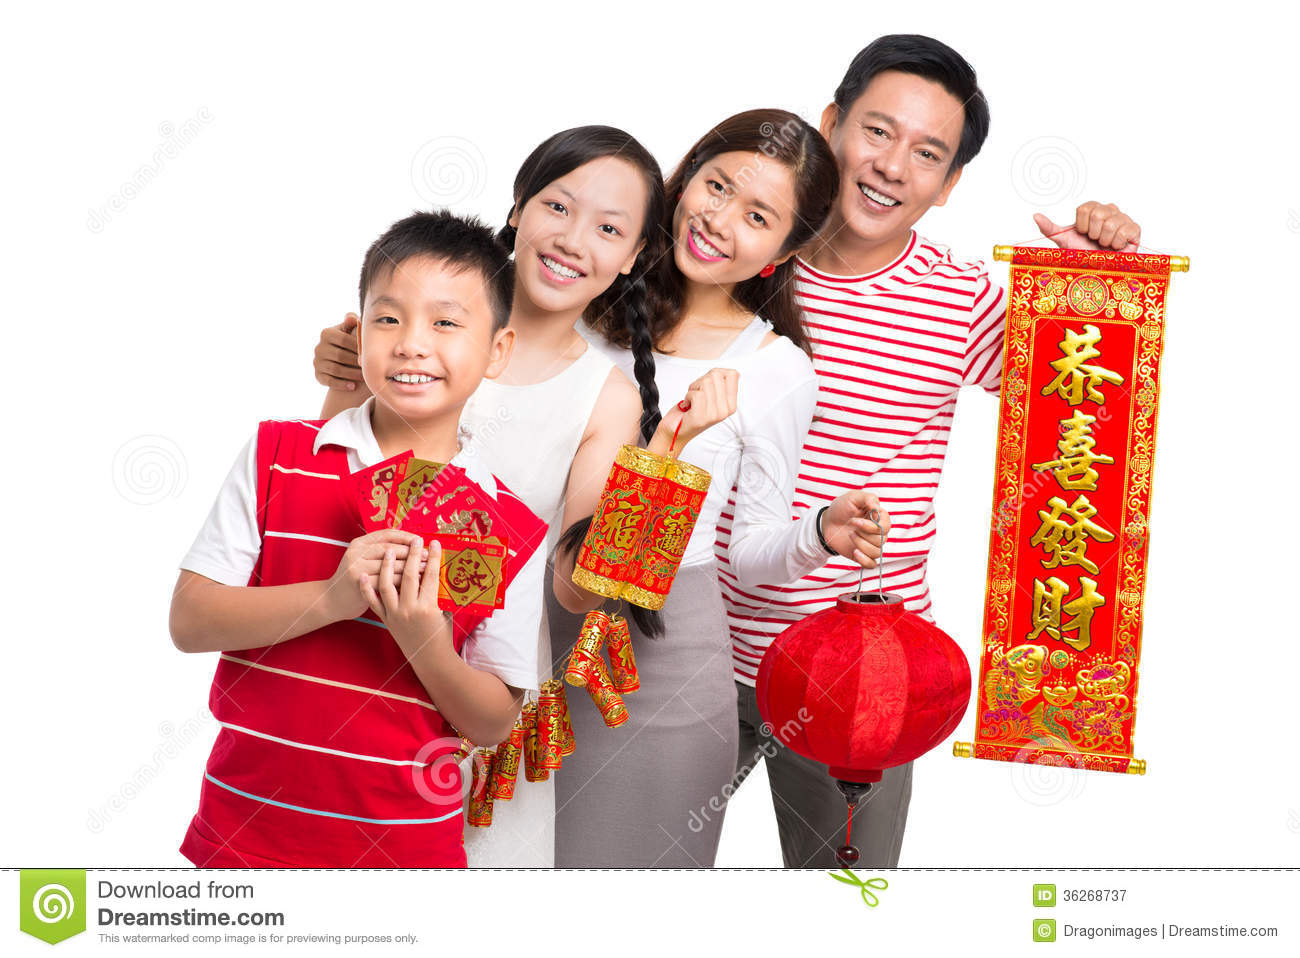 ... happiness in the New Chinese Year standing against a white background